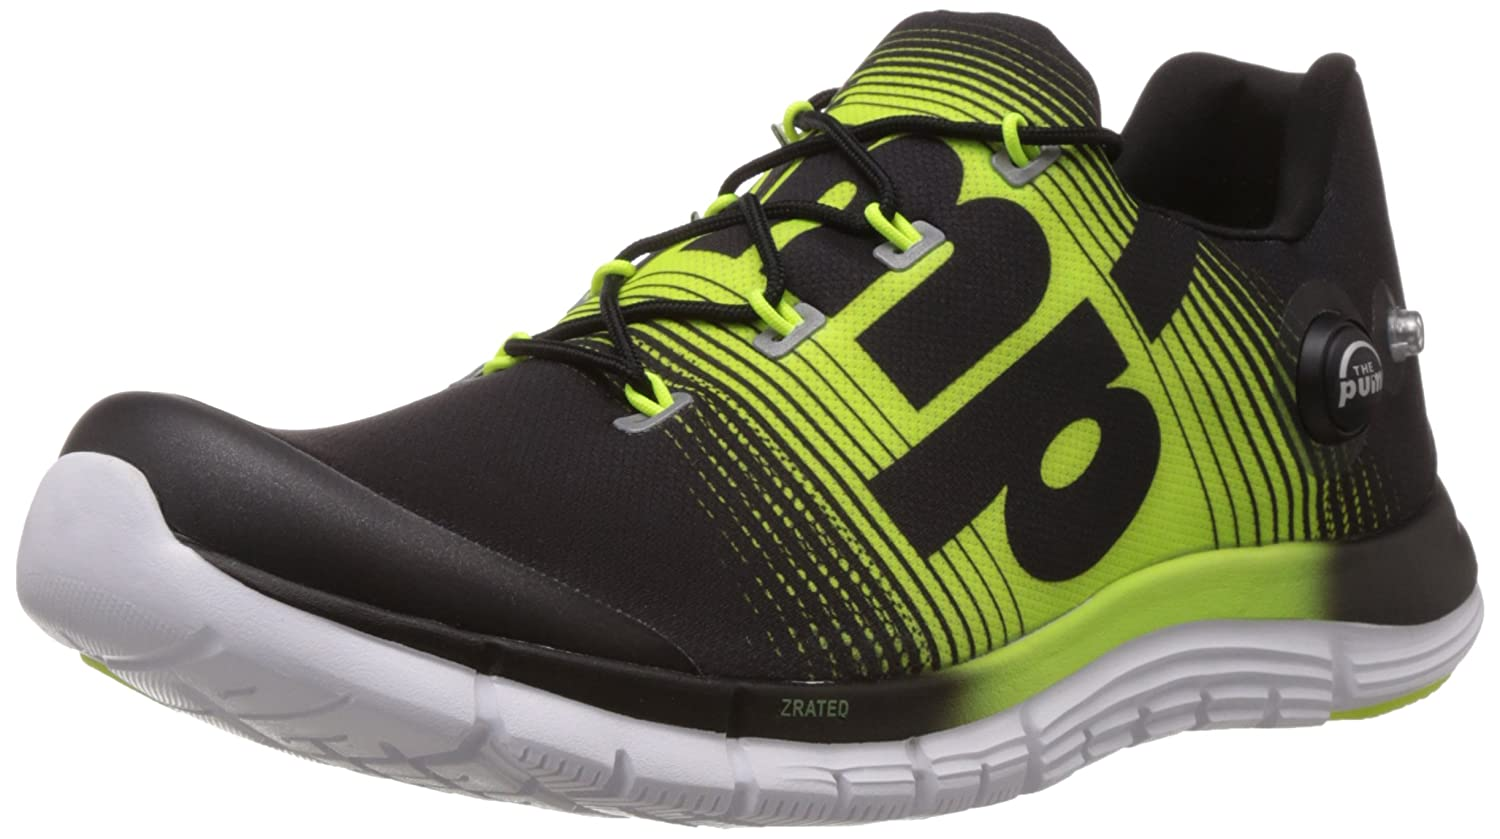 Reebok Men's Zpump Fusion Black, Solar Yellow and White Running Shoes - 6  UK: Buy Online at Low Prices in India - Amazon.in